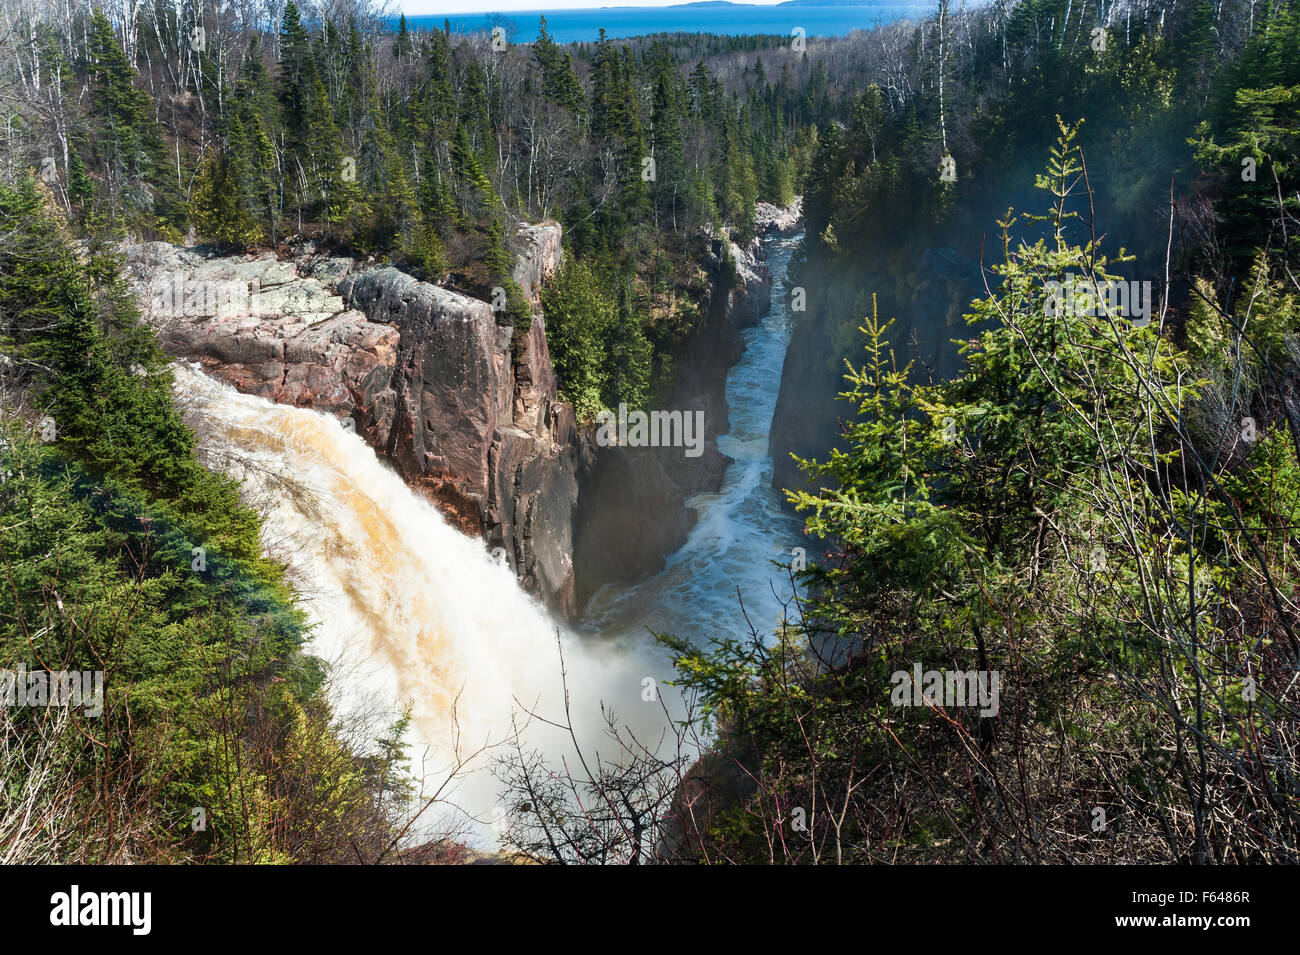 scenic view of waterfalls and boreal forest in Kenora, Ontario - Stock Image